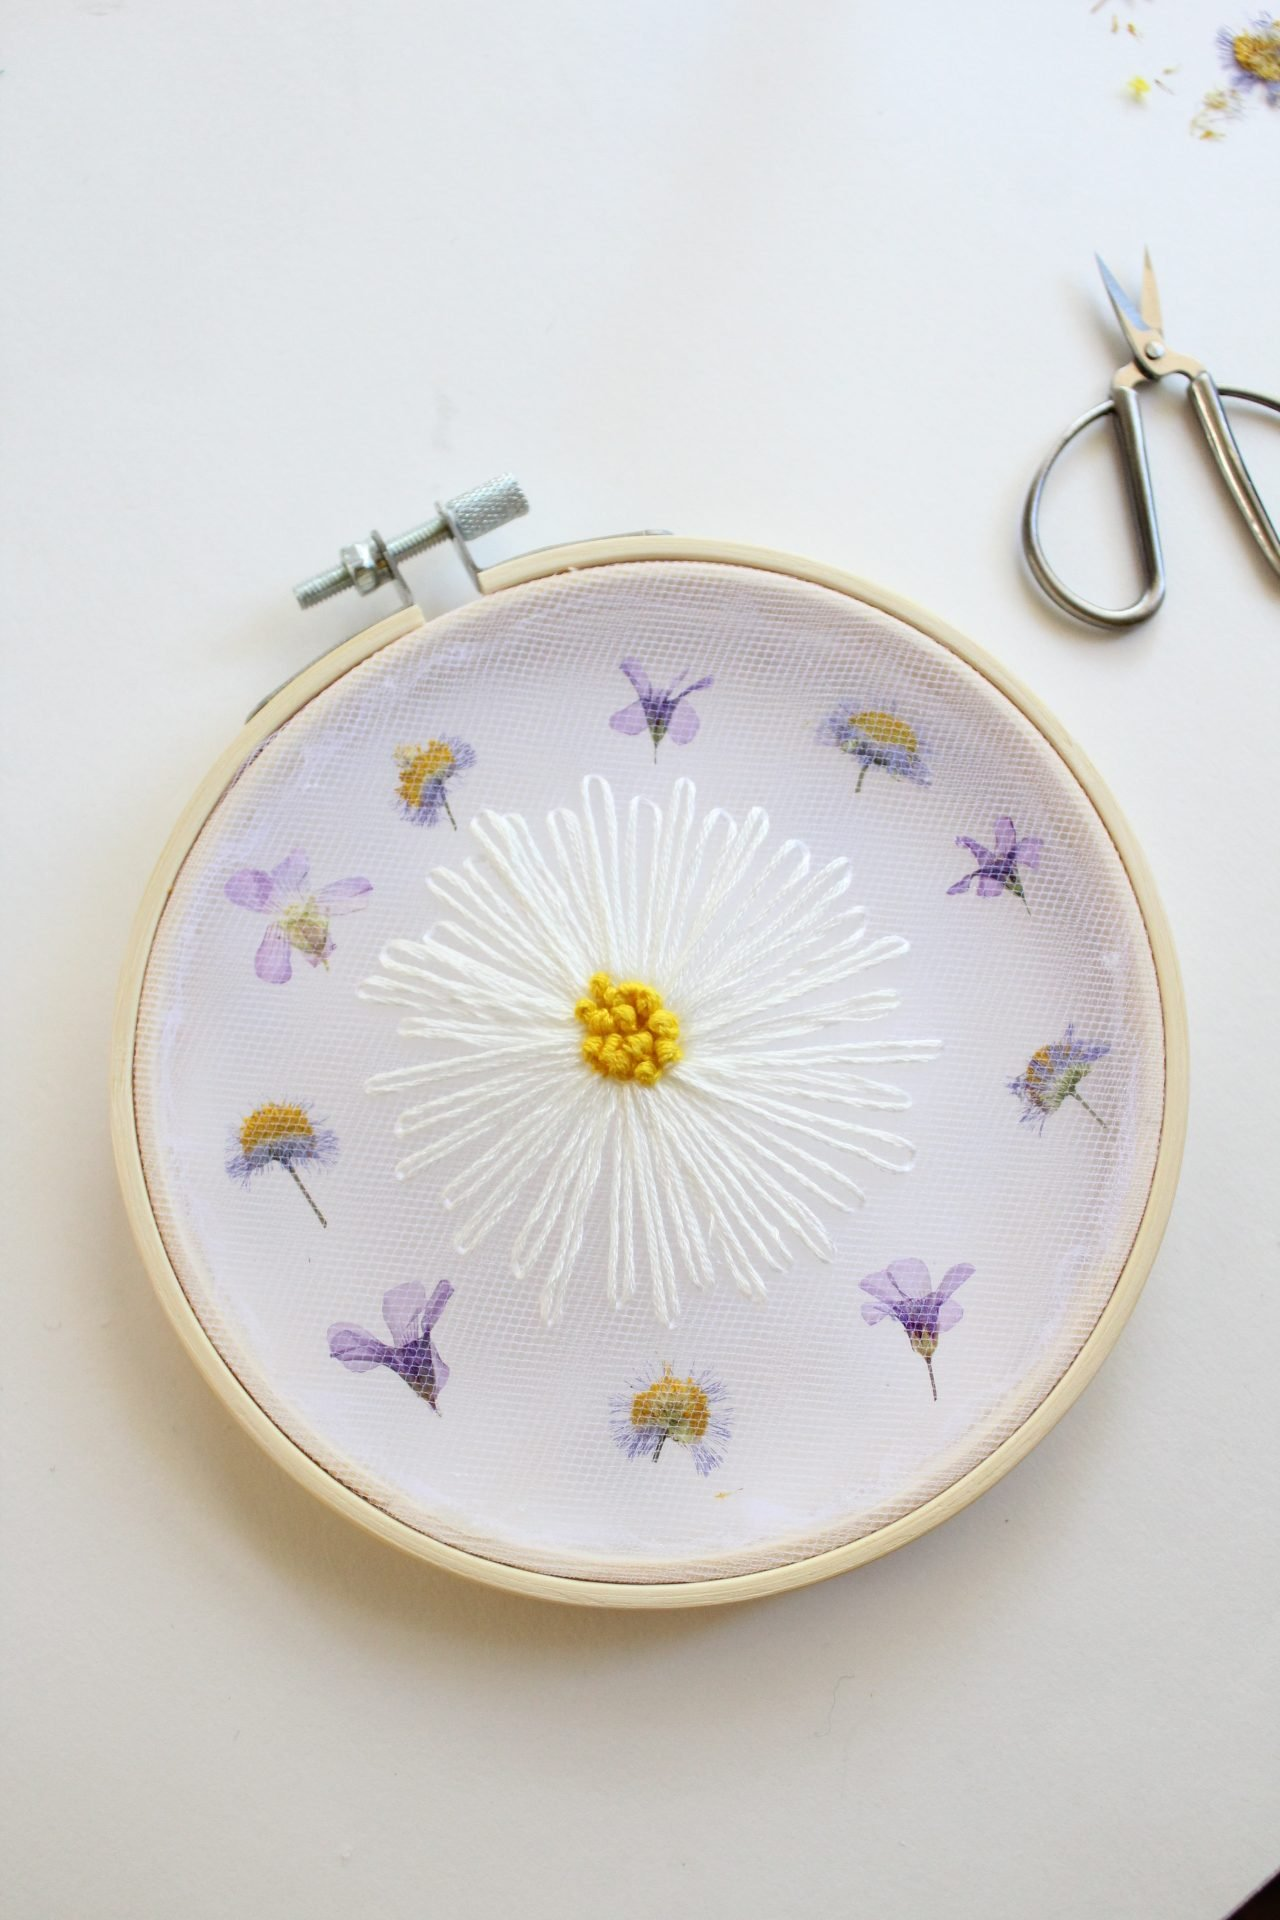 DIY Daisy and Pressed Flowers Tulle Embroidery Pattern